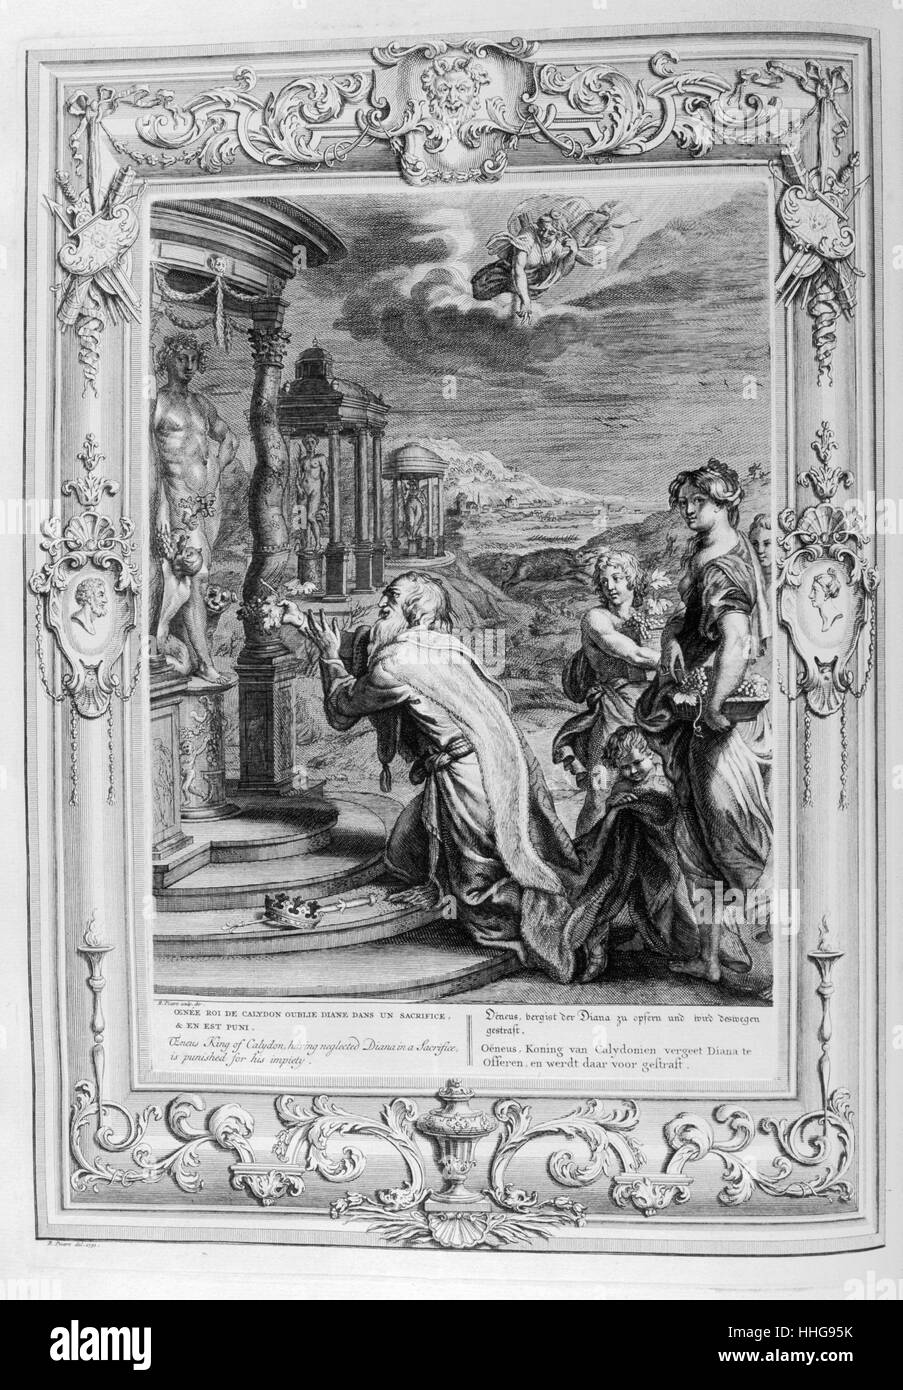 Oenus King of Calydon makes a sacrifice to the gods. Engraved illustration from 'The Temple of the Muses', - Stock Image